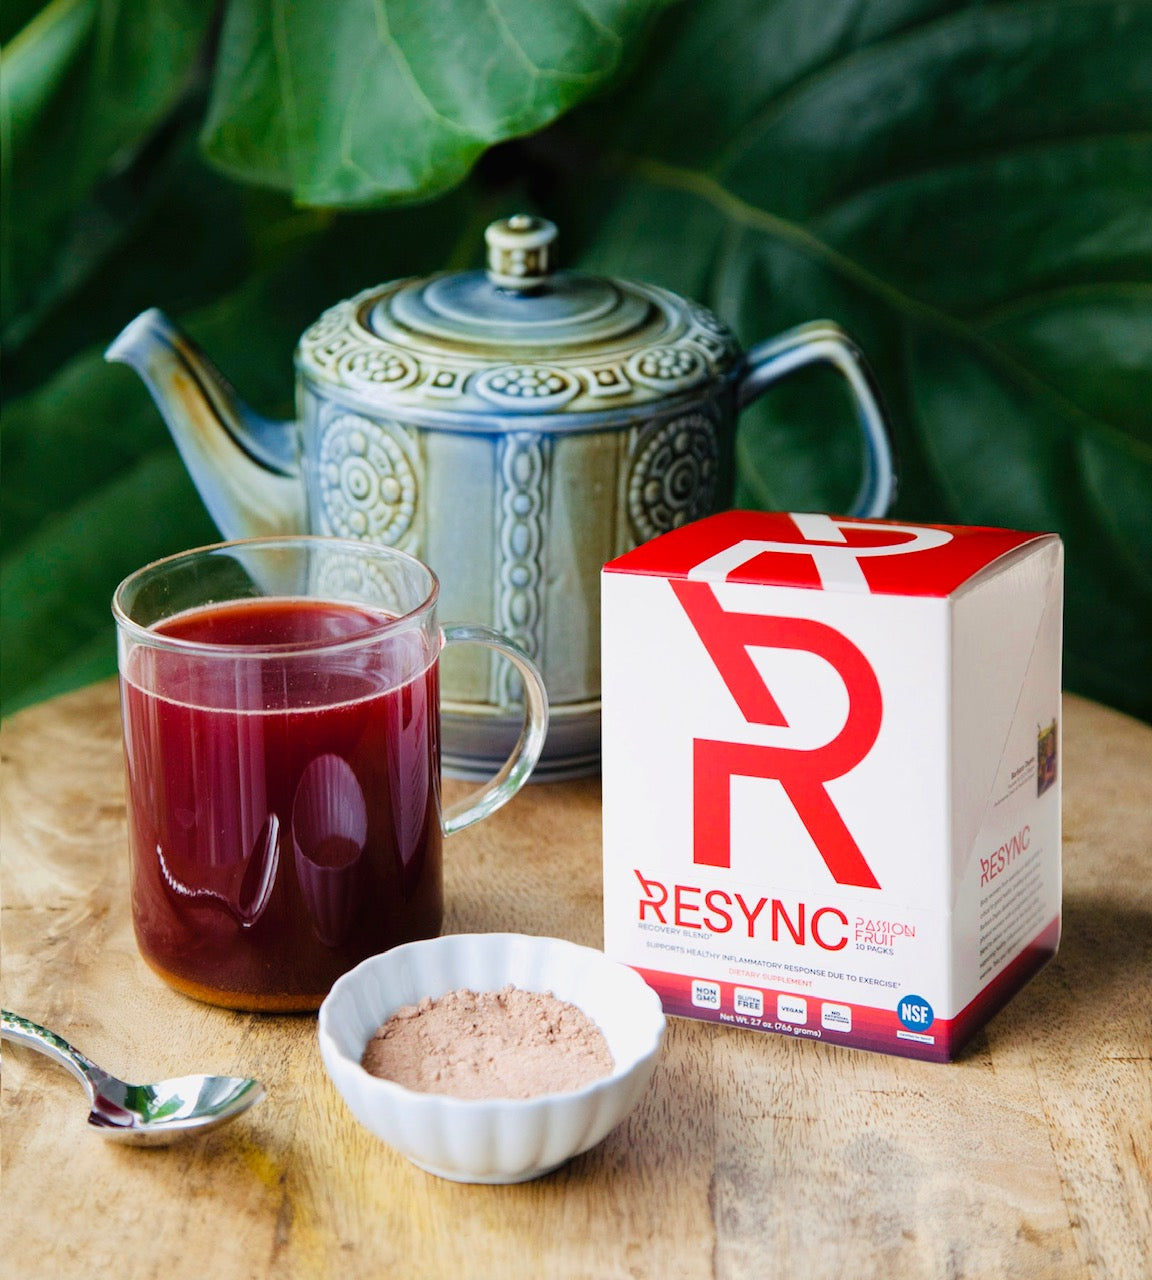 Tea mixed with resync